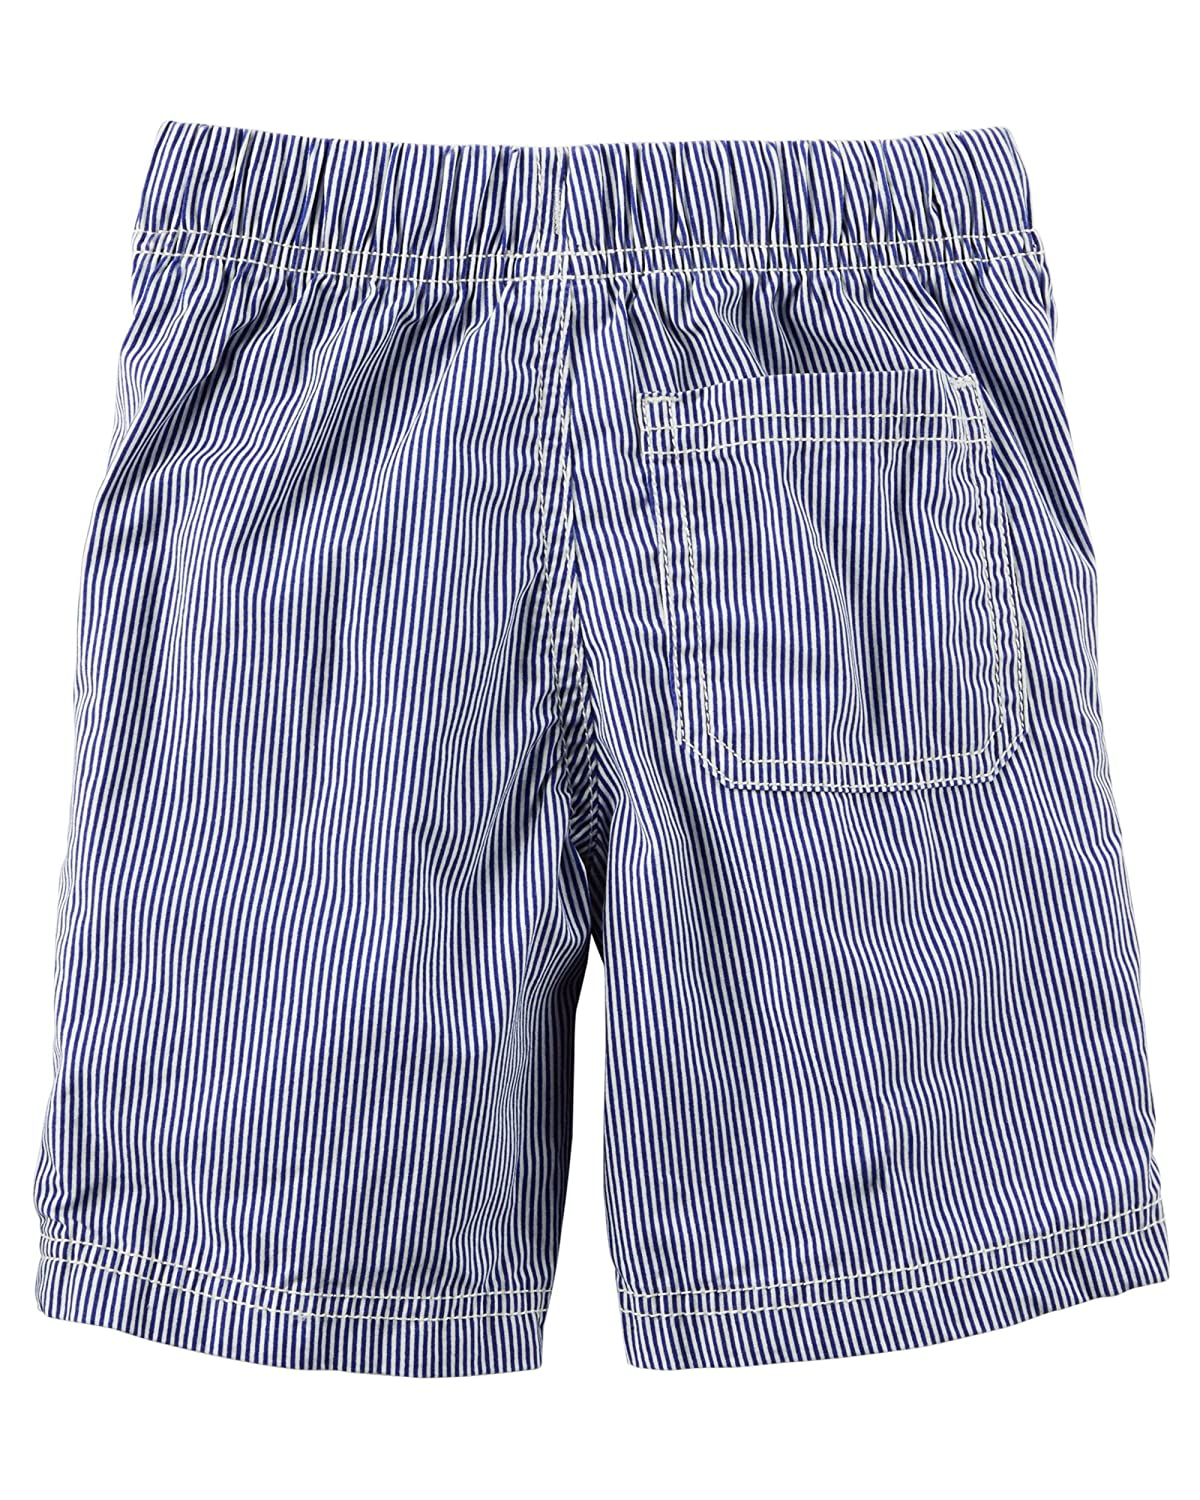 9 Months Carters Boys Striped Blue /& White Pull On Cotton Shorts